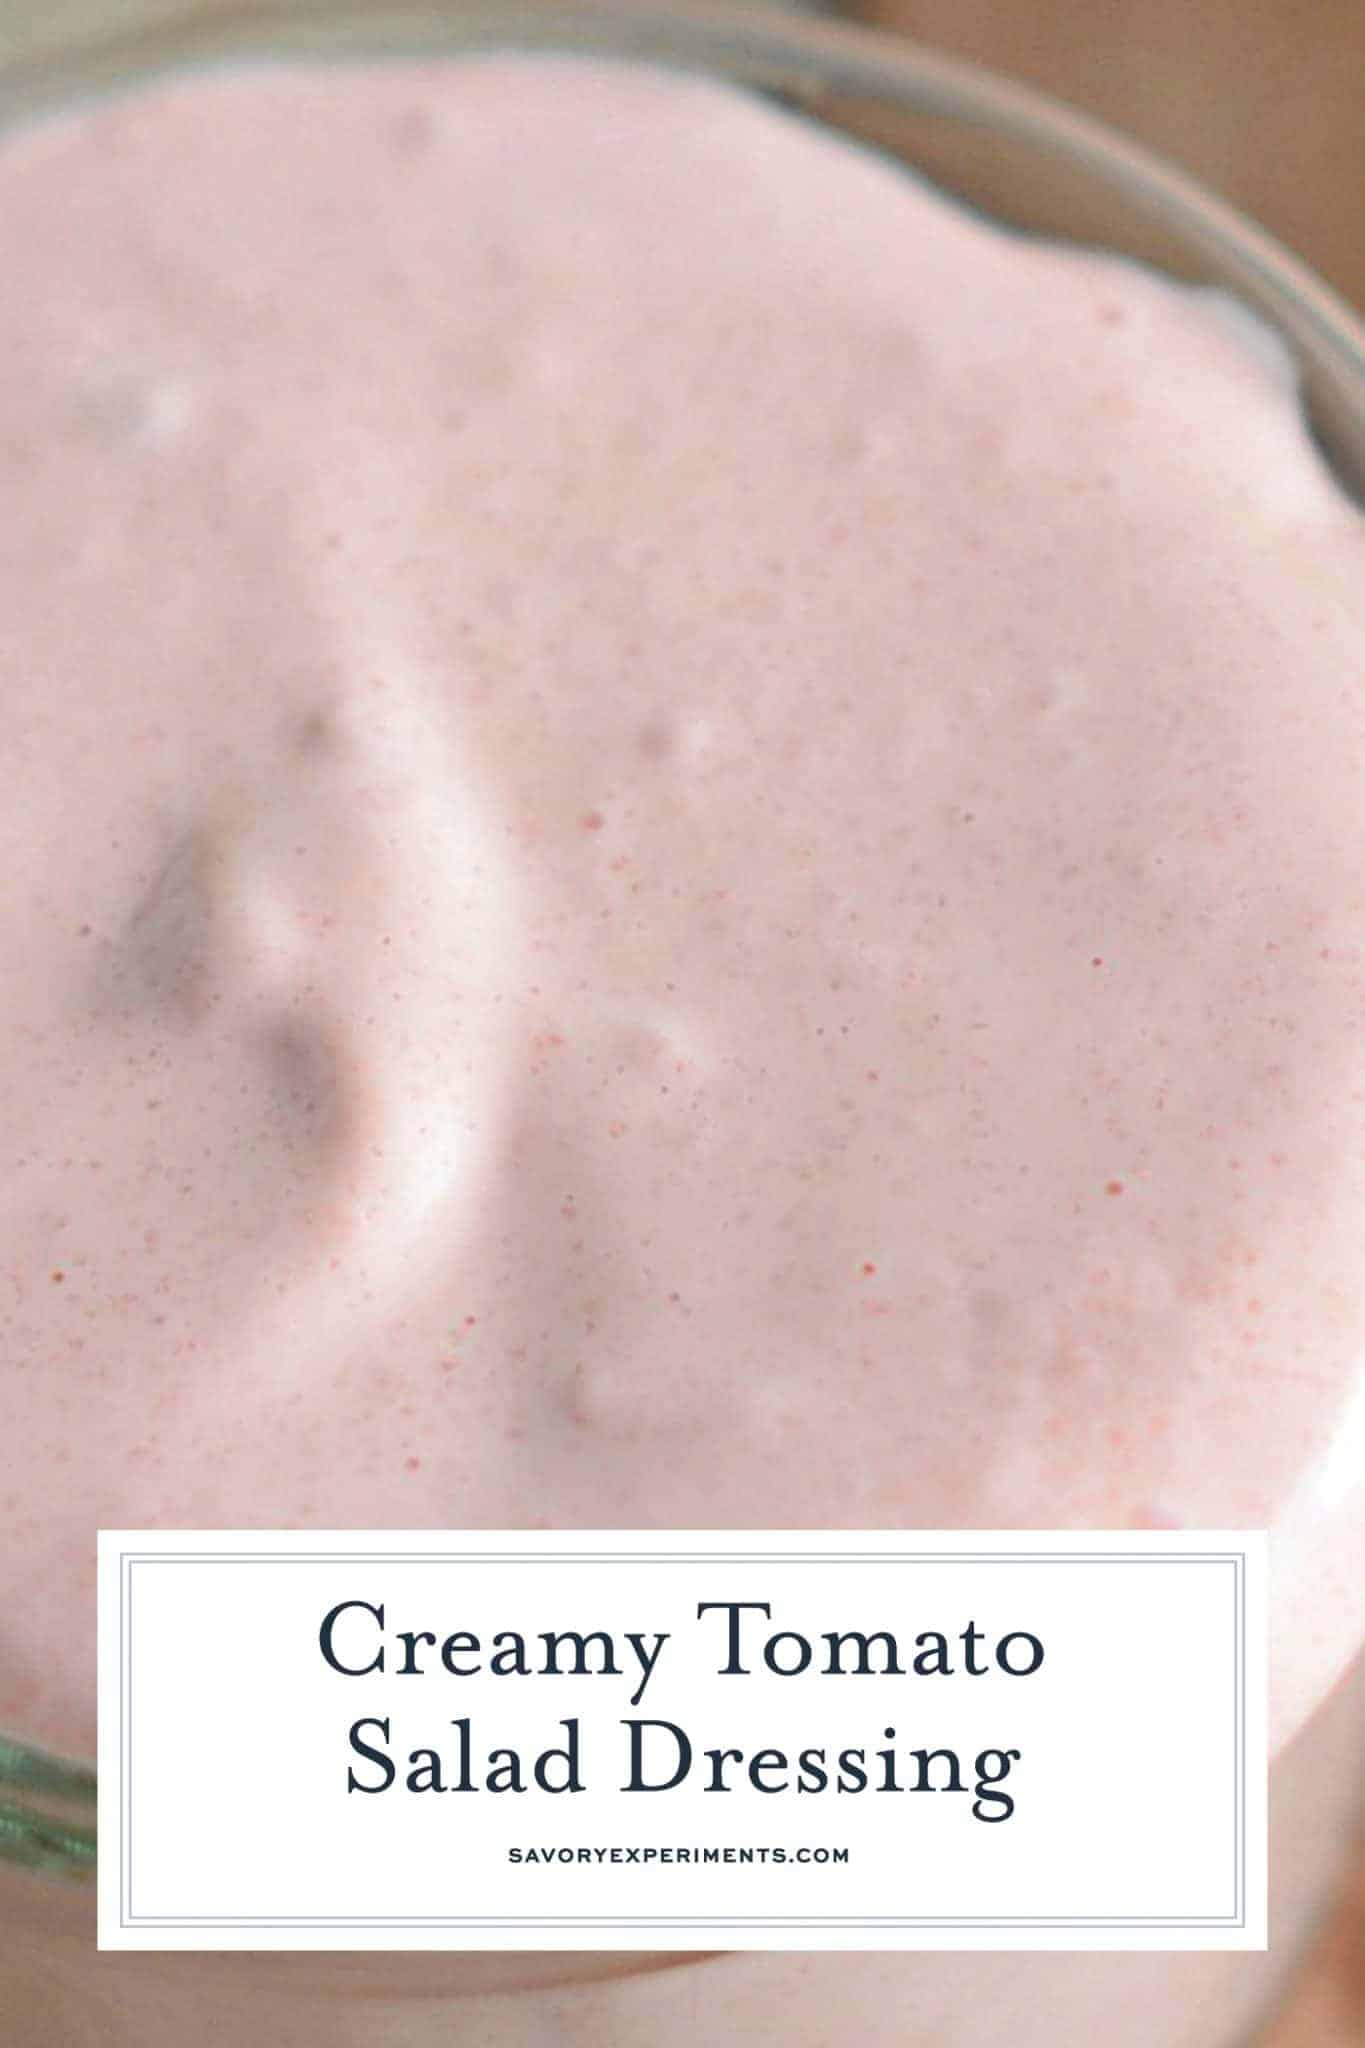 Creamy Tomato Salad Dressing is a homemade salad dressing that can also be used on grilled vegetables or as a dipping sauce. Uses fresh tomatoes with zesty lemon juice and Dijon mustard. #homemadesaladdressingrecipe www.savoryexperiments.com